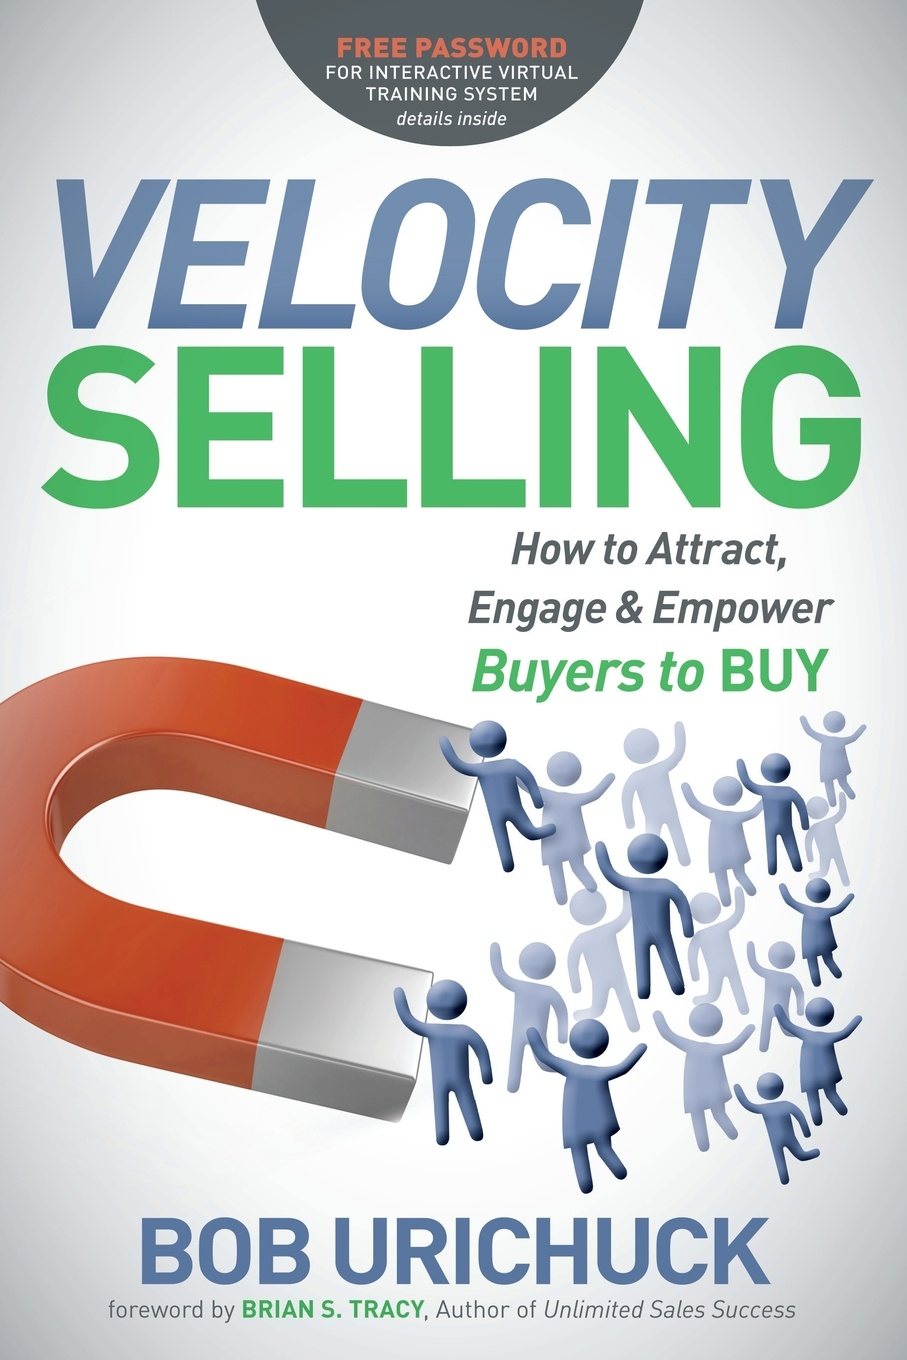 Bob Urichuck Velocity Selling. How to Attract, Engage & Empower Buyers to Buy joseph dr murphy how to attract money